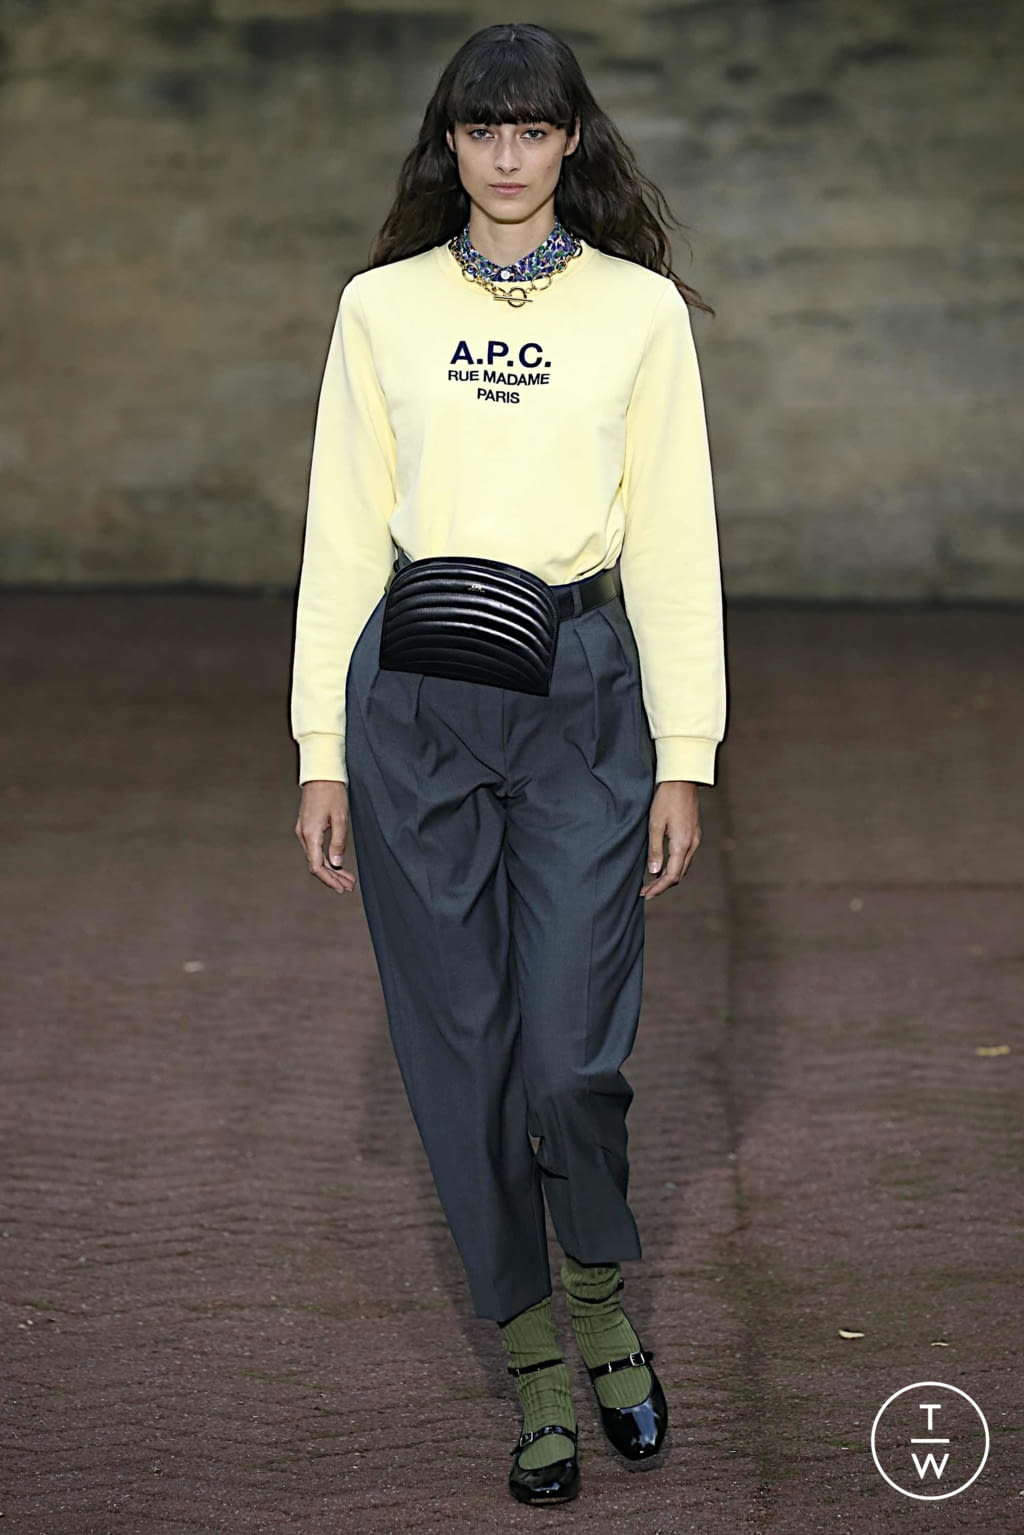 Fashion Week Paris Spring/Summer 2020 look 11 de la collection Apc womenswear